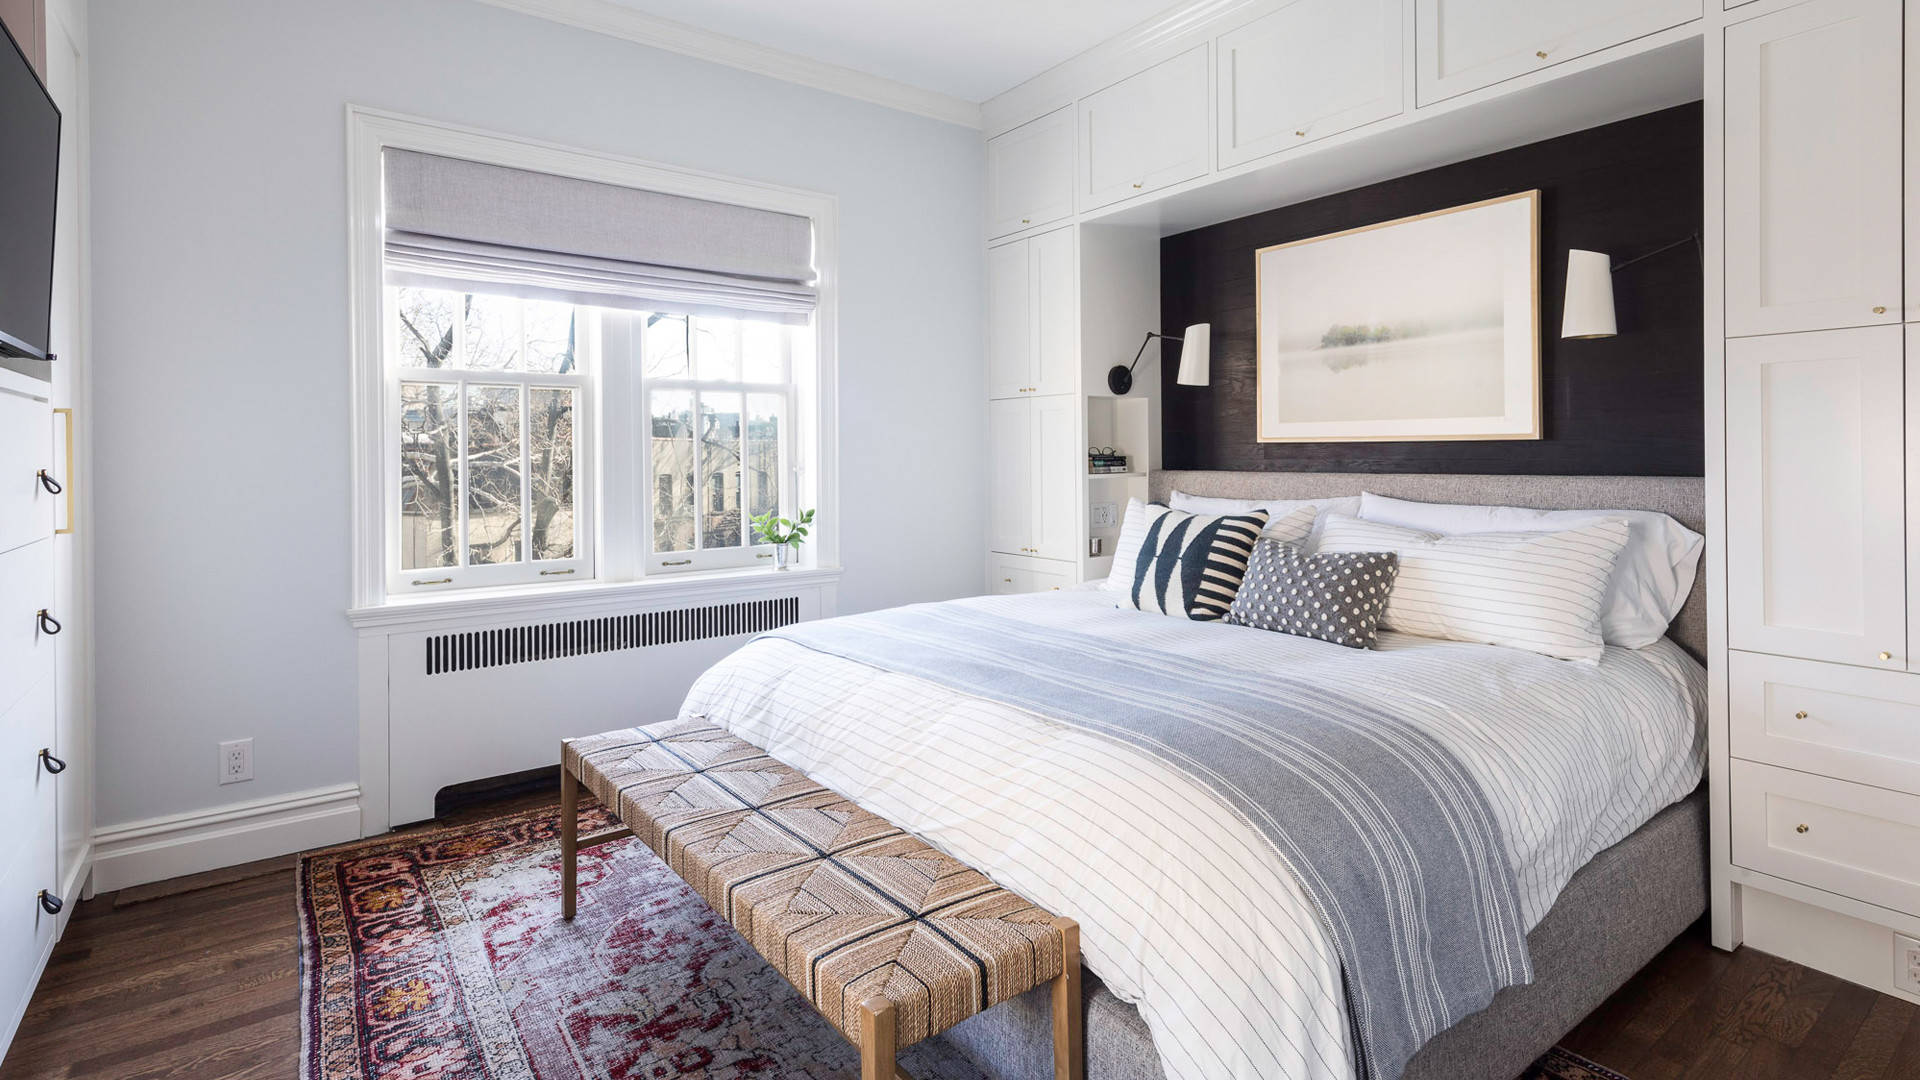 75 Beautiful Small Bedroom Pictures Ideas May 2021 Houzz